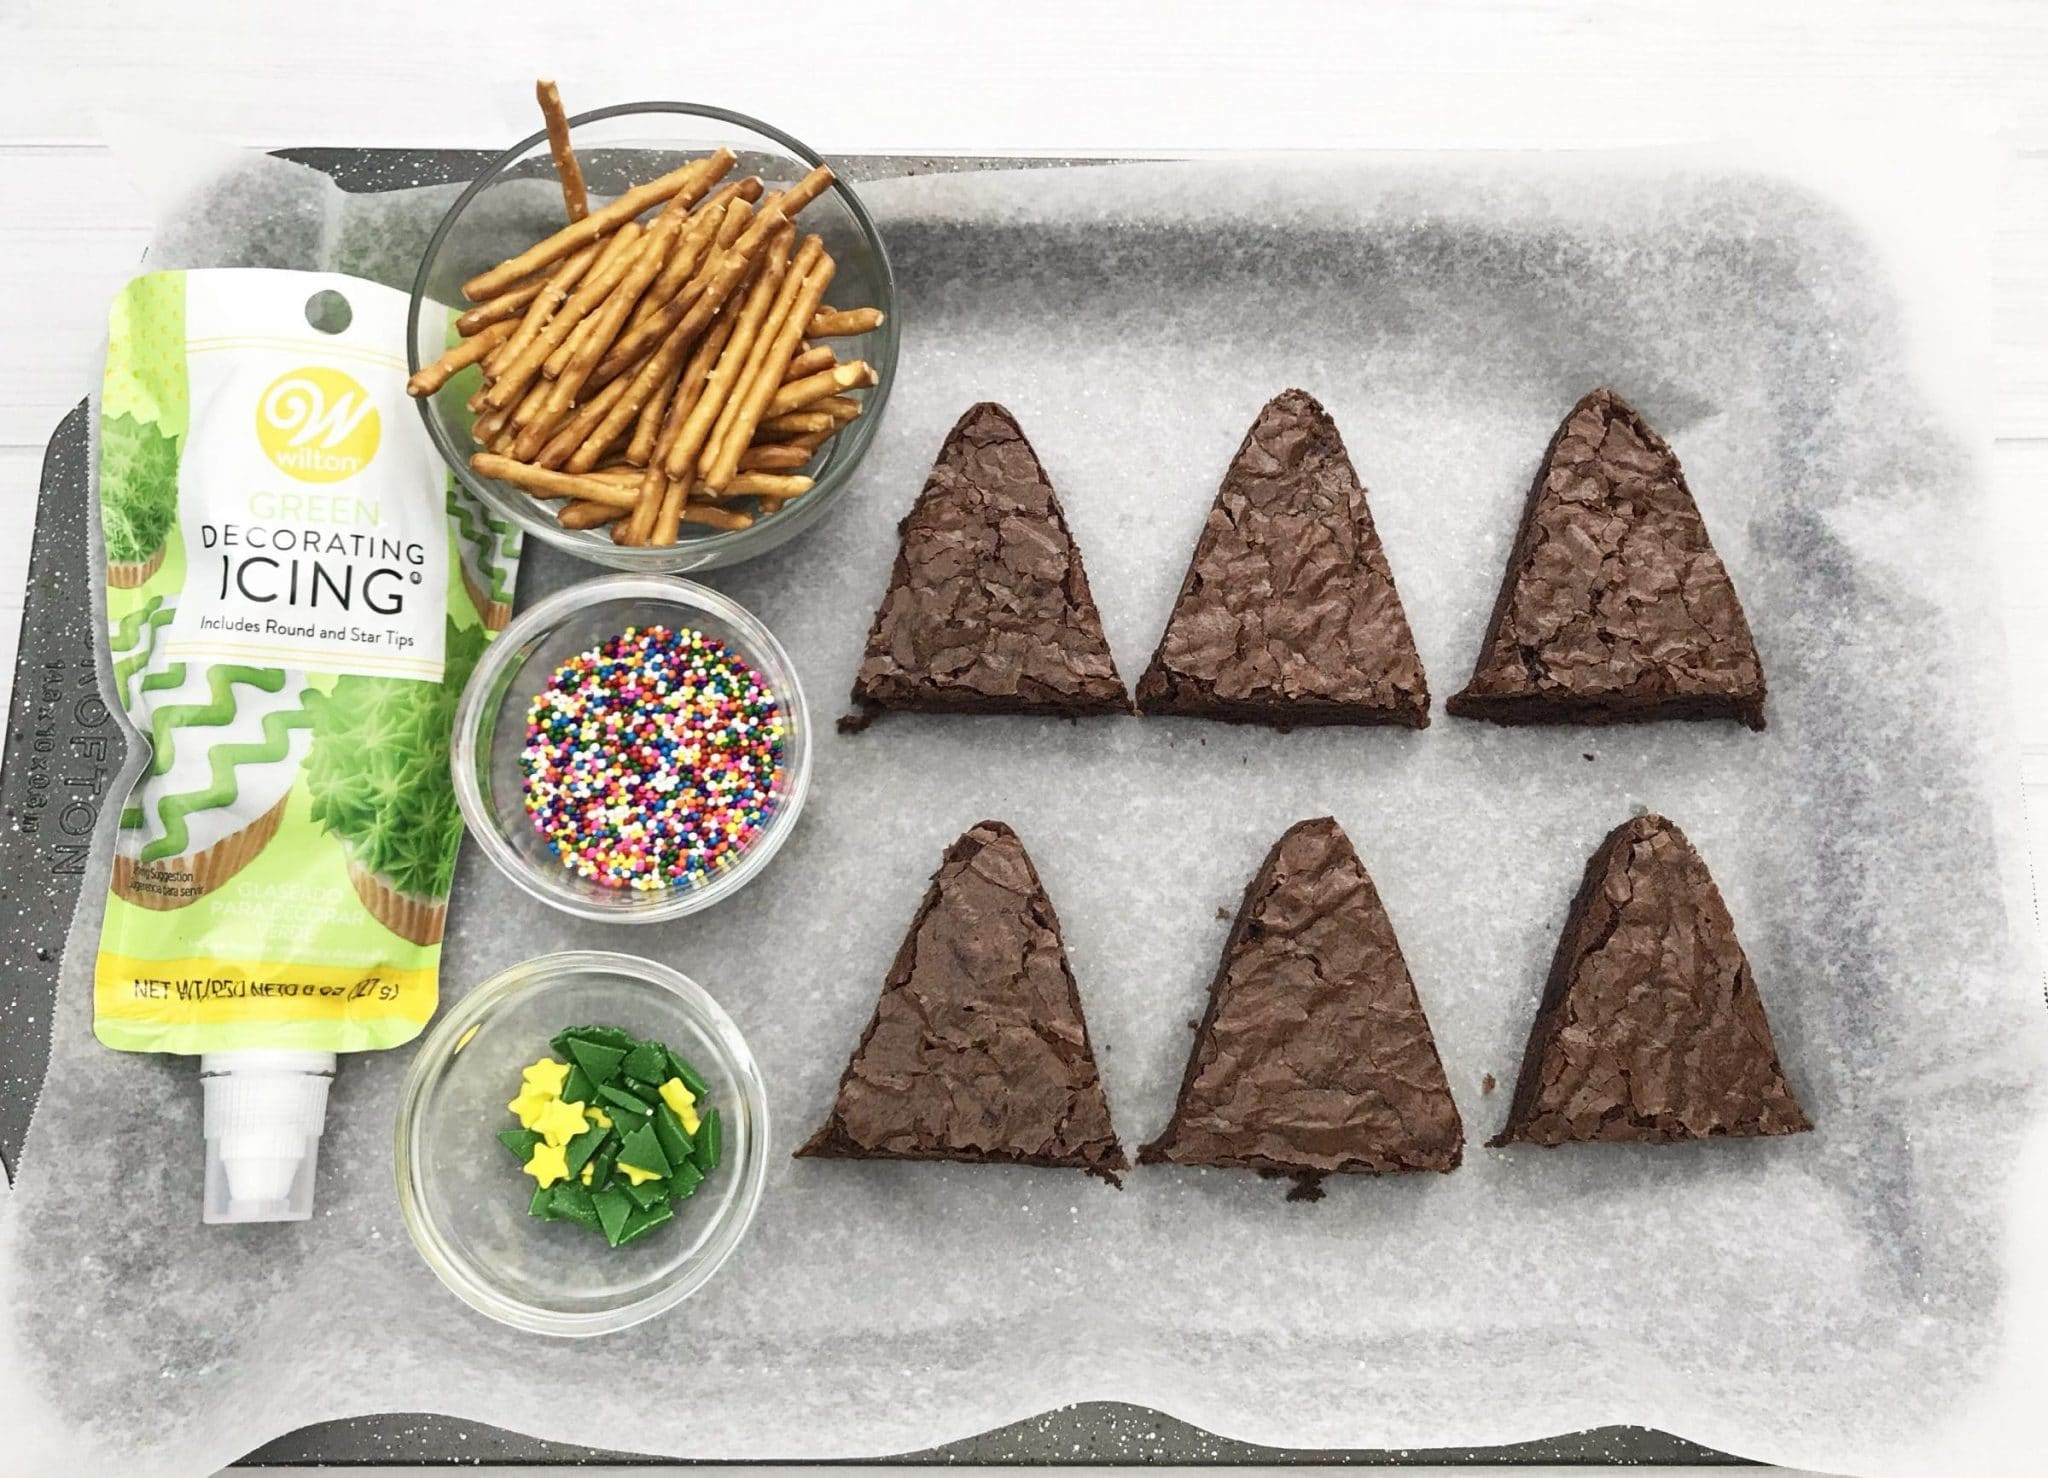 triangle brownie next to sprinkles, pretzel sticks, frosting and stars